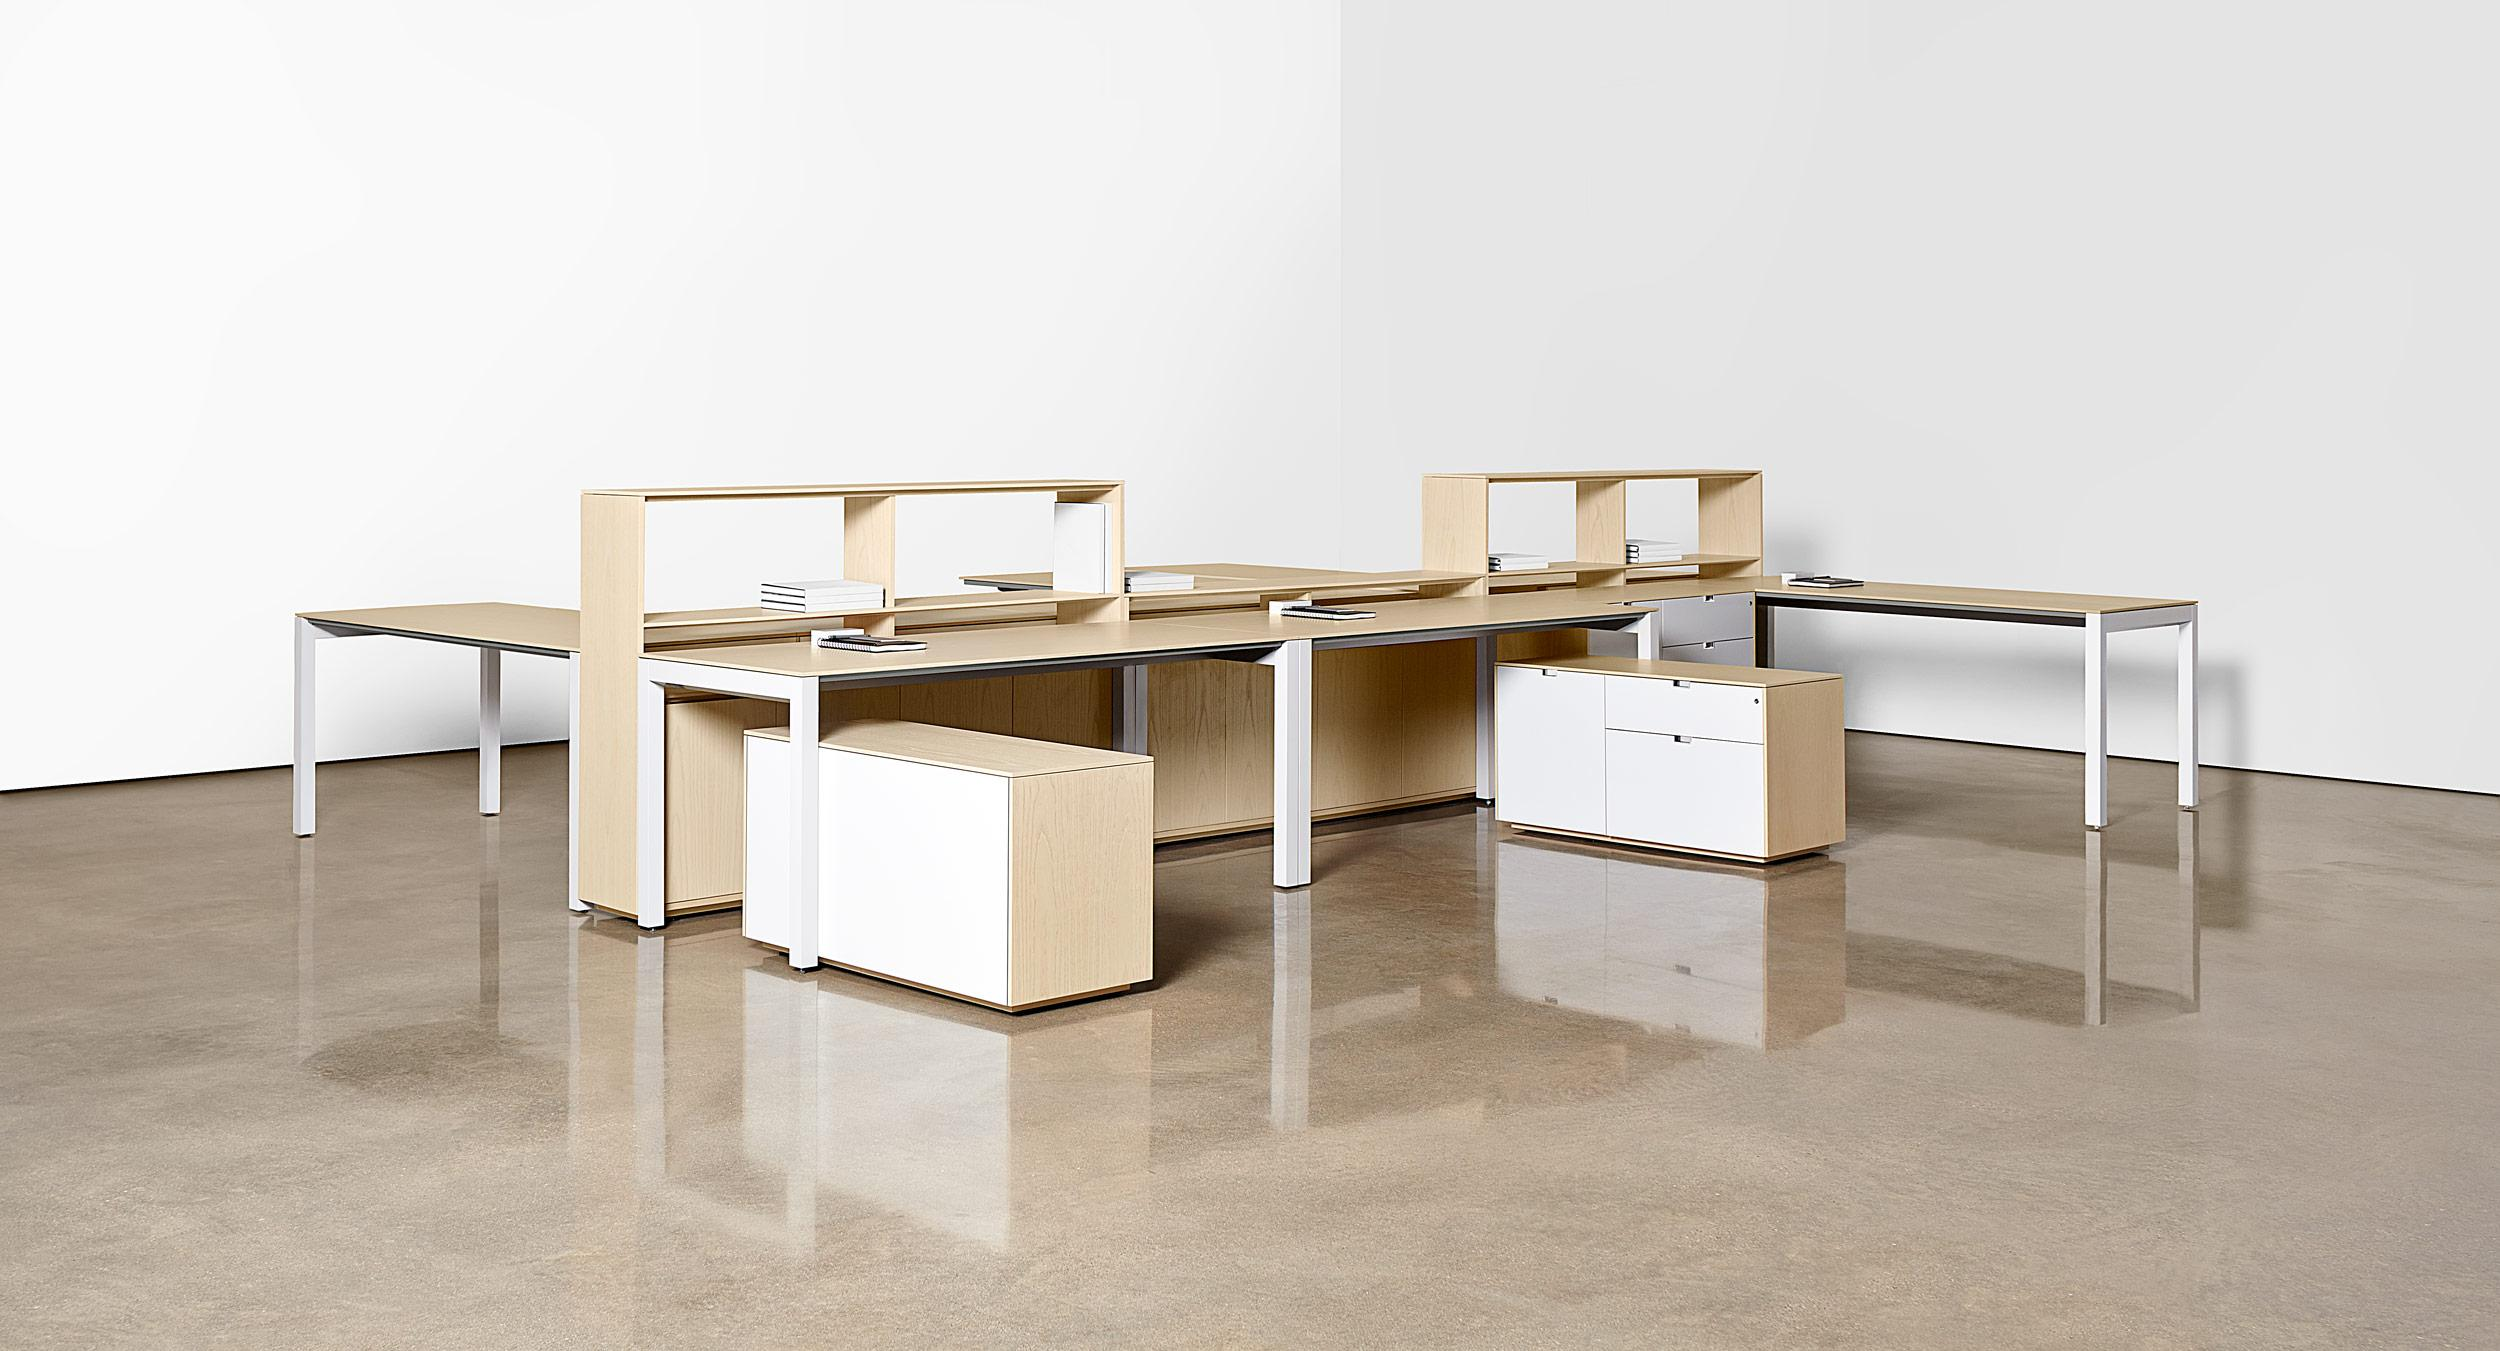 Form and re-form groups and teams with freestanding desks and storage along a centerline spine wall.